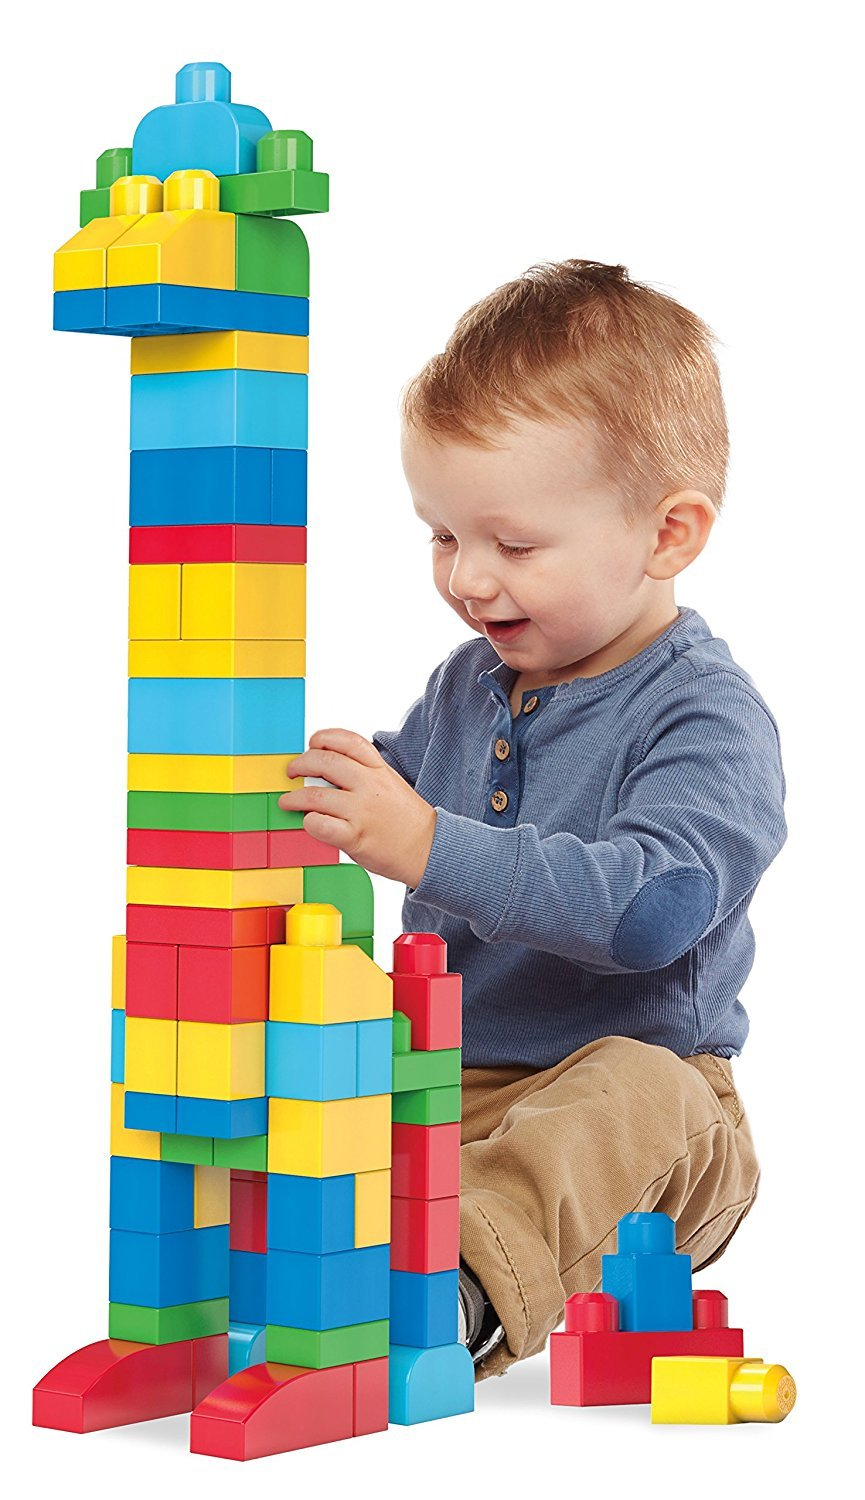 Building Toys For 3 Year Olds : Best gifts for year old boys in itsy bitsy fun